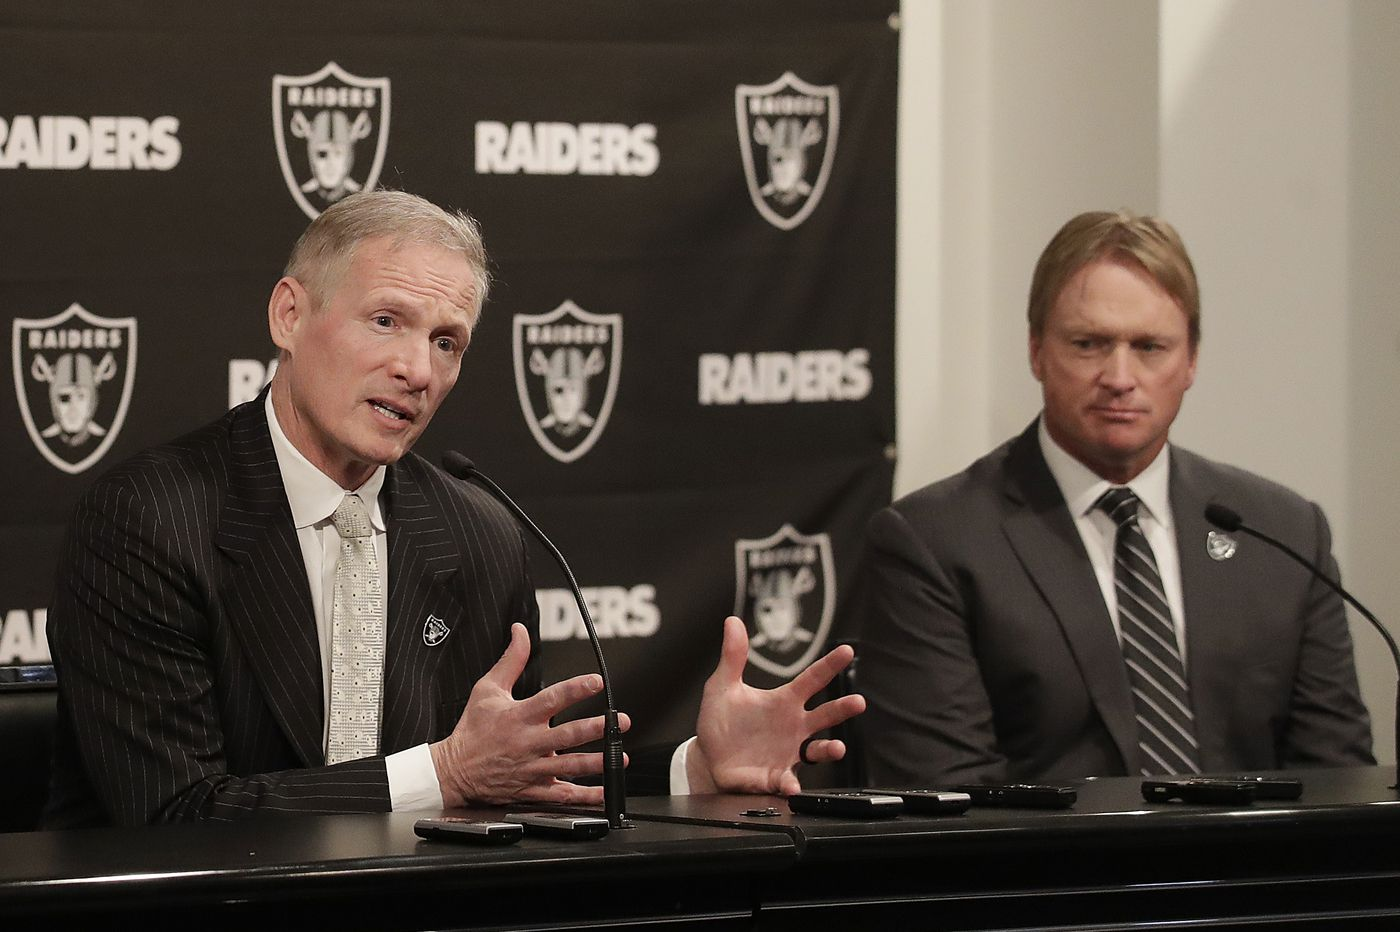 After 15 years as a 'lone ranger' with the NFL Network, Philly native Mike Mayock has 'skin in the game' as Raiders GM